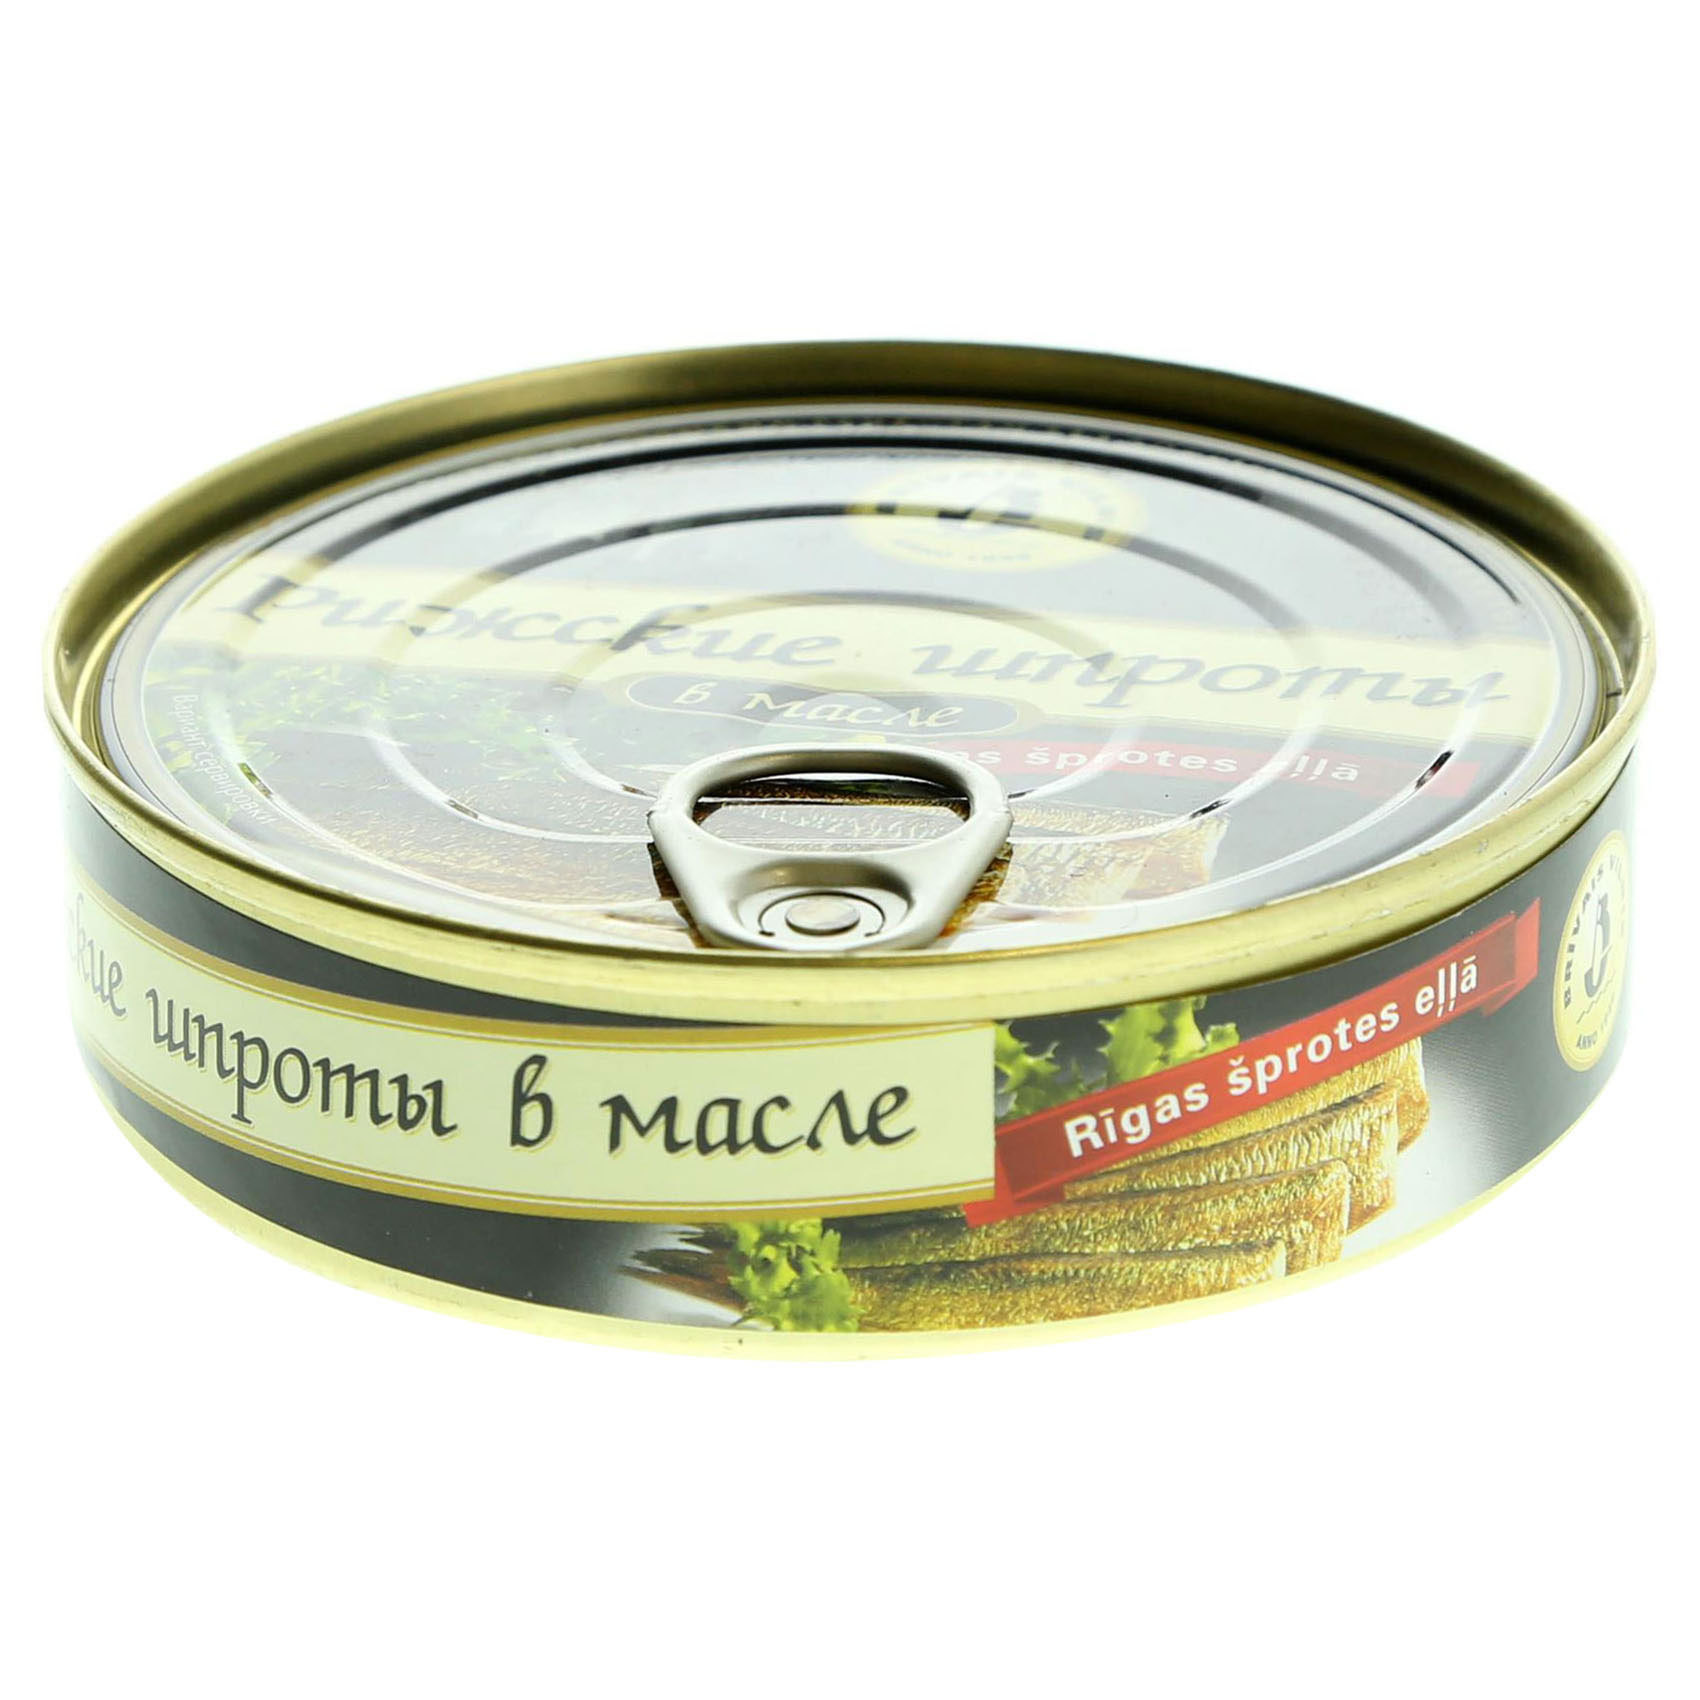 R.RUSSIAN SPRATS SMOKED 160G